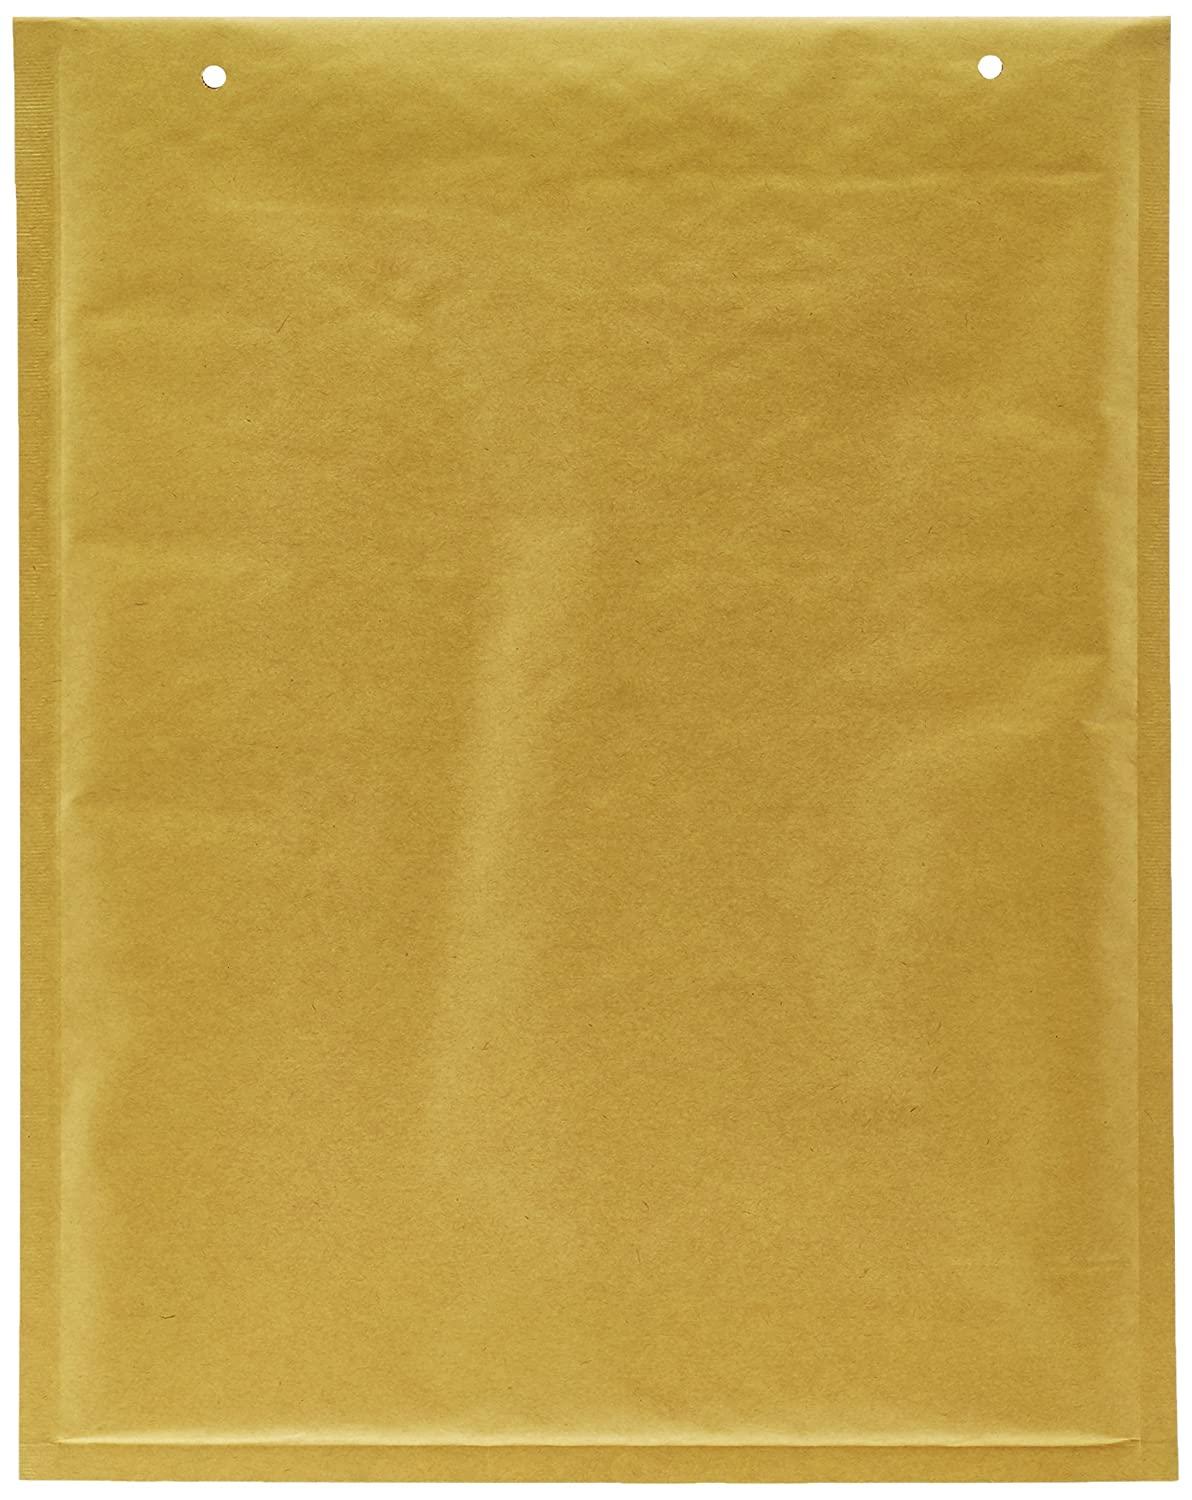 Mail Lite MLG G/5 AirCap air cushion covers, size G/5, gold (pack of 50) Sealed Air 100328212